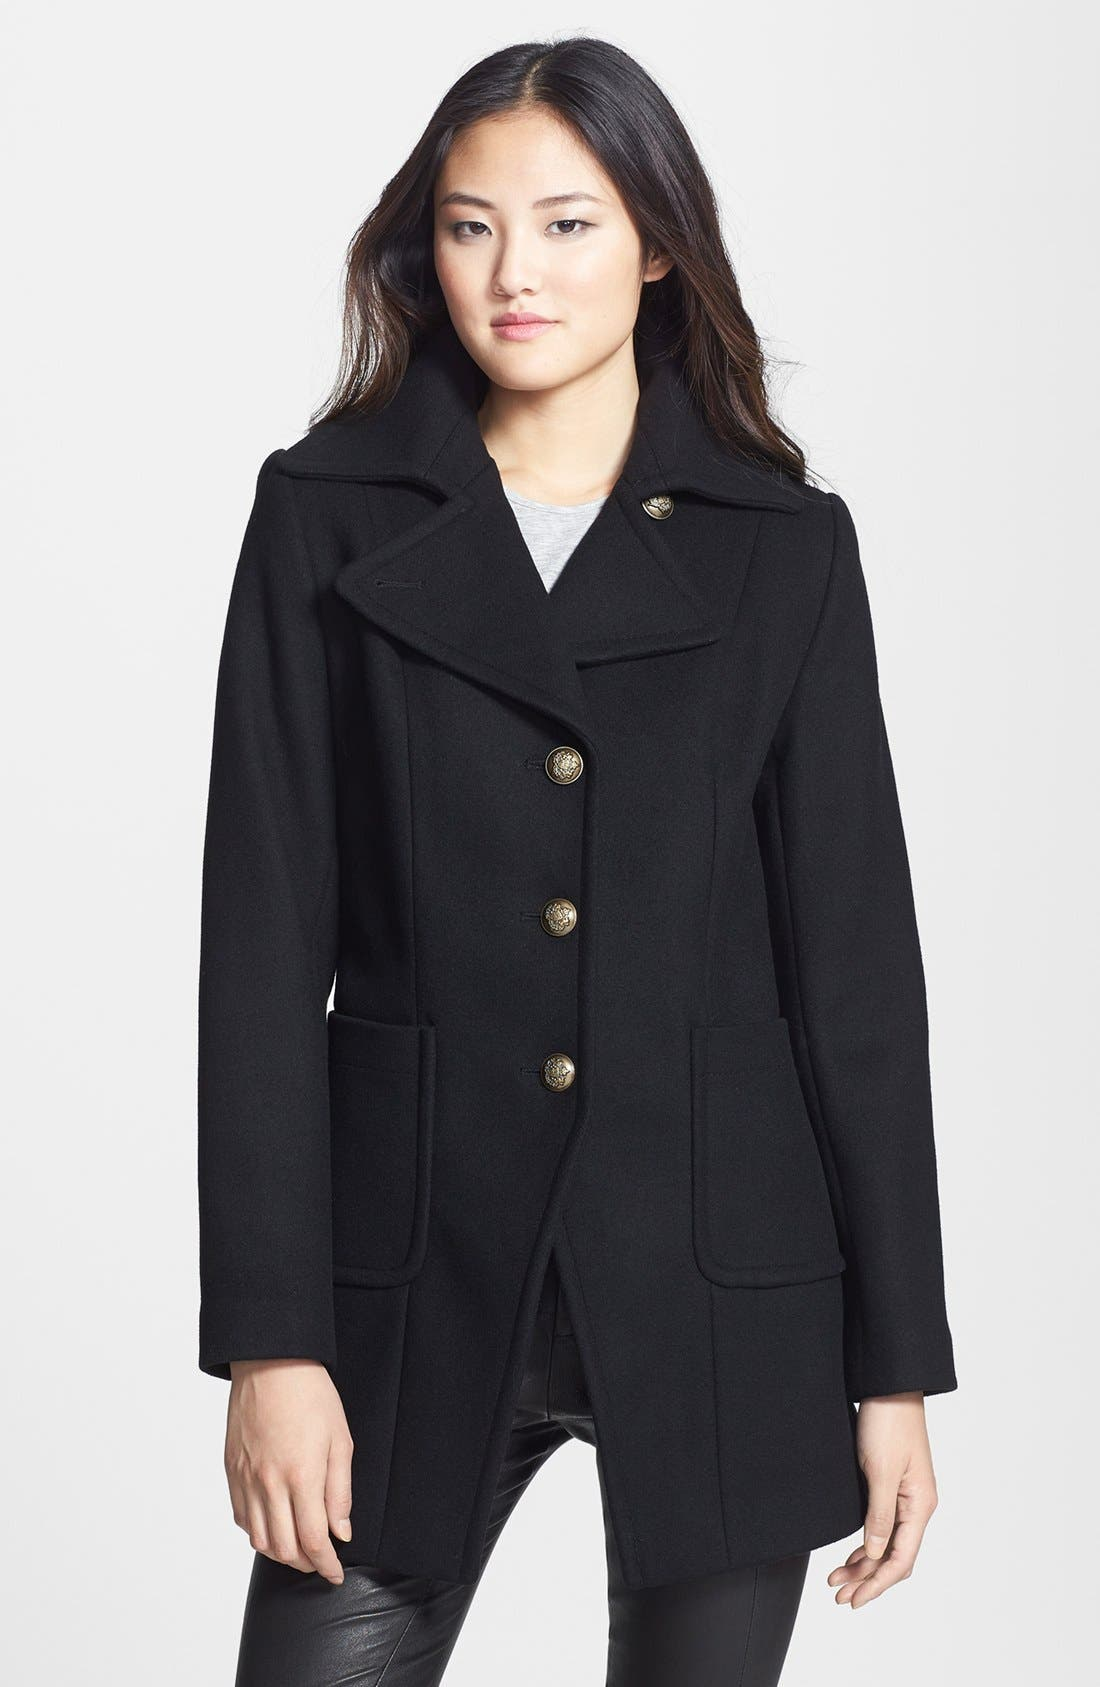 Main Image - Kristen Blake Single Breasted Wool Blend Walking Coat (Nordstrom Exclusive)